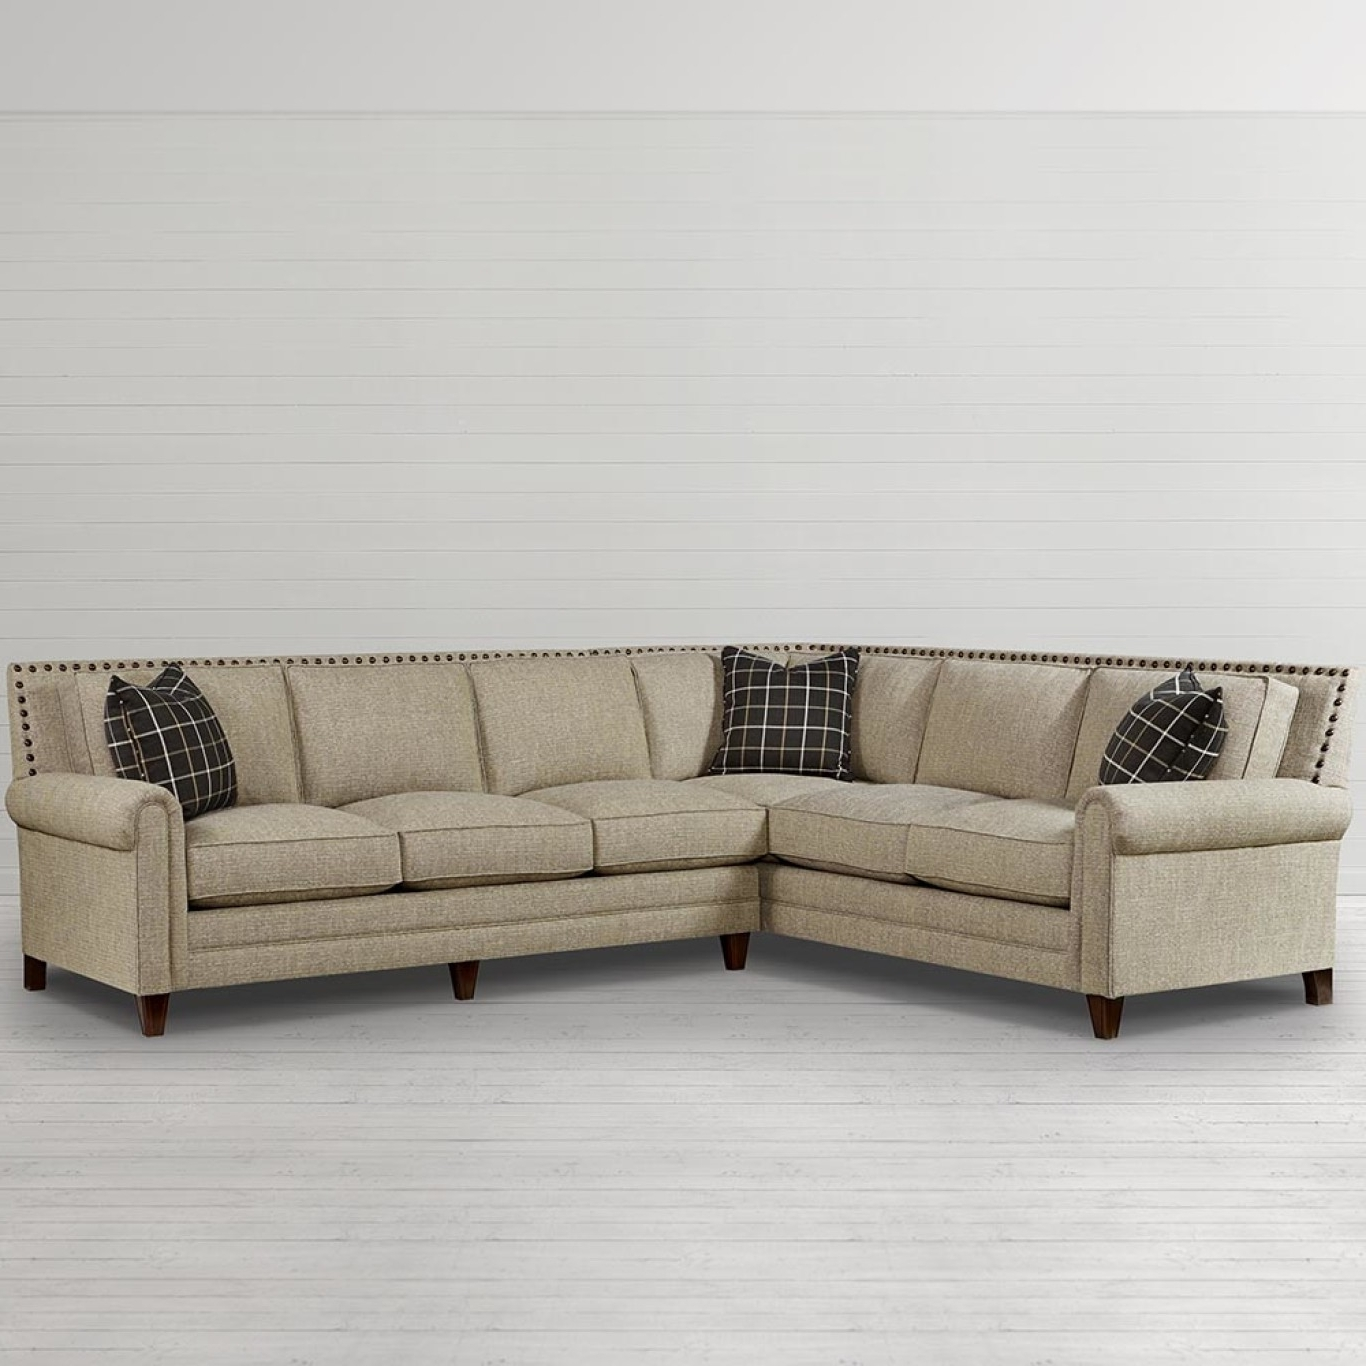 Bassett Furniture Greenville Sc Pertaining To Fashionable Sectional Sofas In Greenville Sc (View 1 of 15)